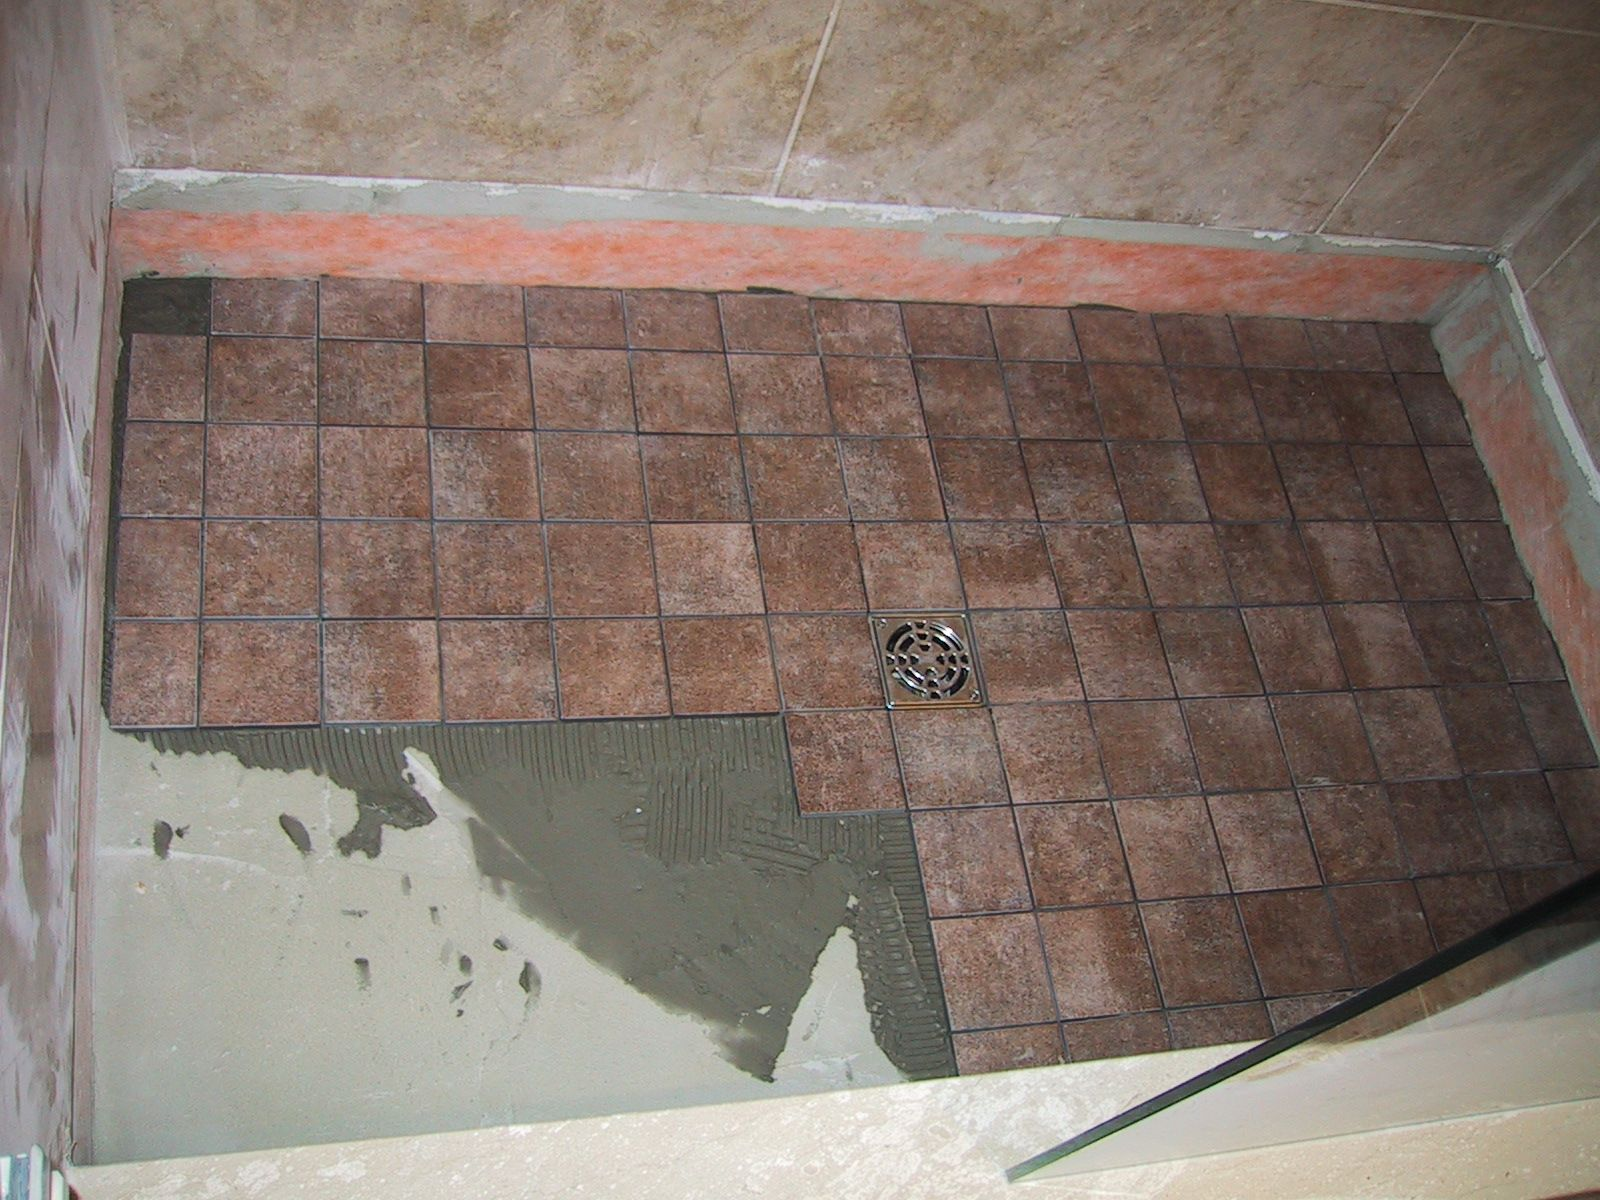 Tiling Bathroom Floor Or Walls First build the shower floor first, including the floor tile, and then